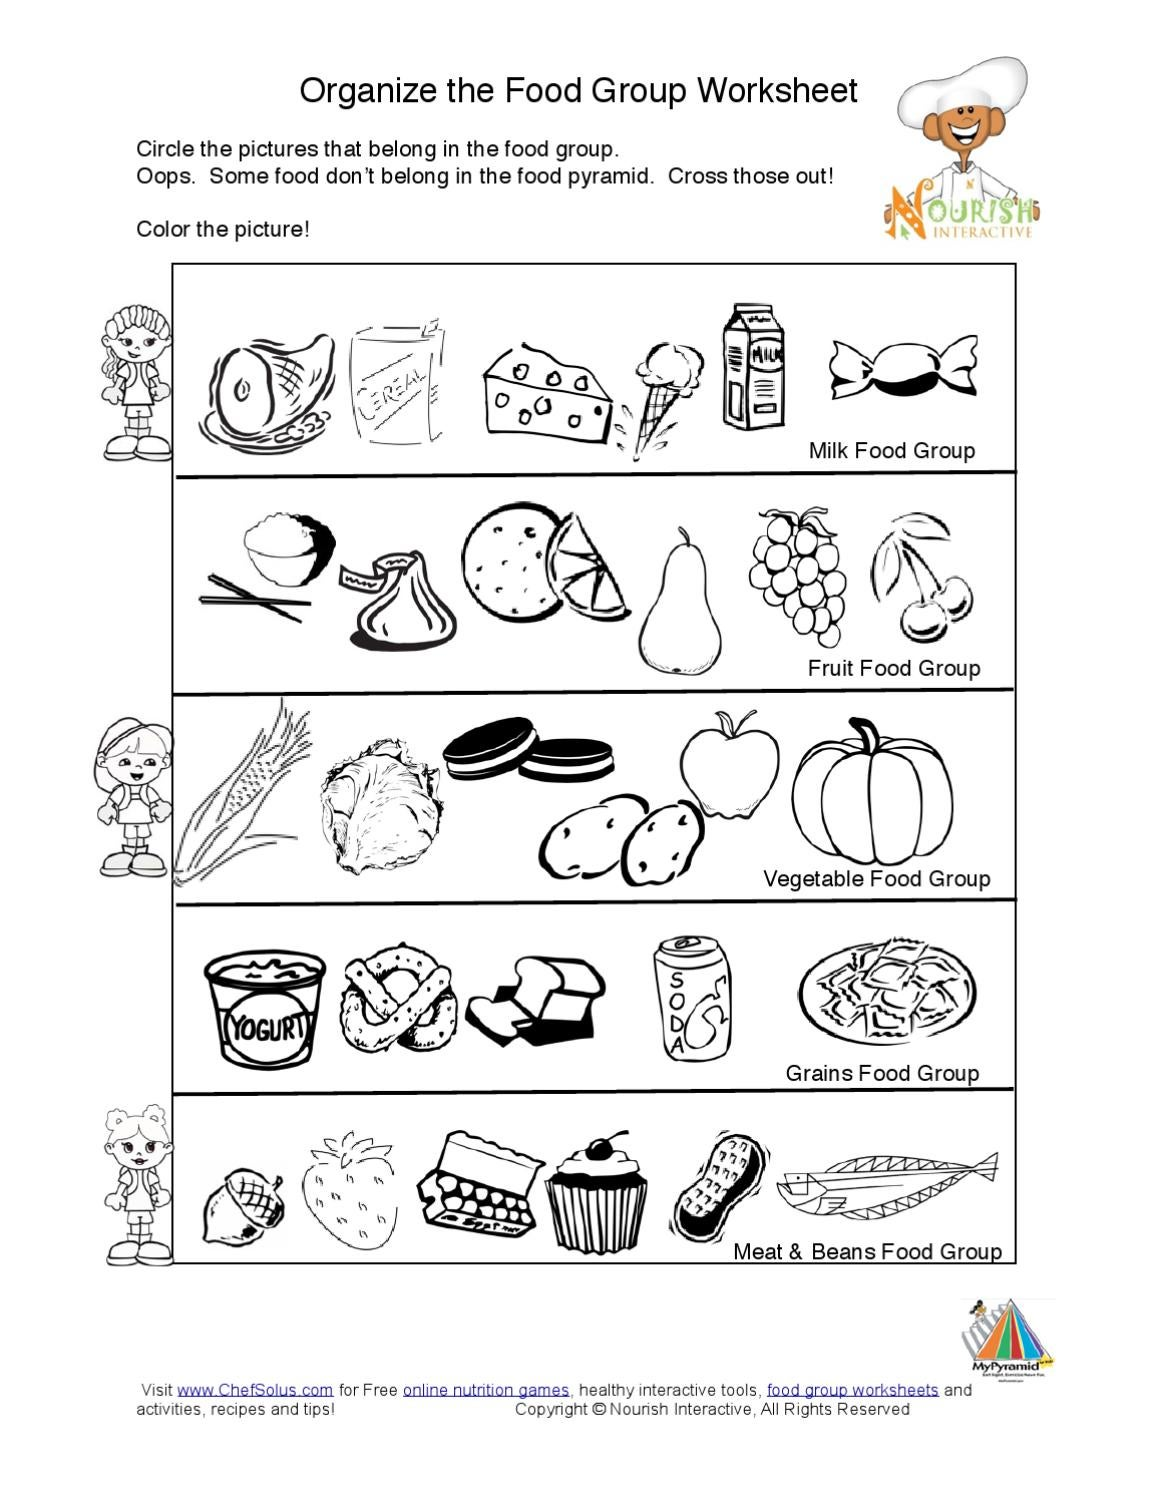 ISSUU - kids-food-pyramid-food-groups-learning-nutrition-worksheet-K-5 ...